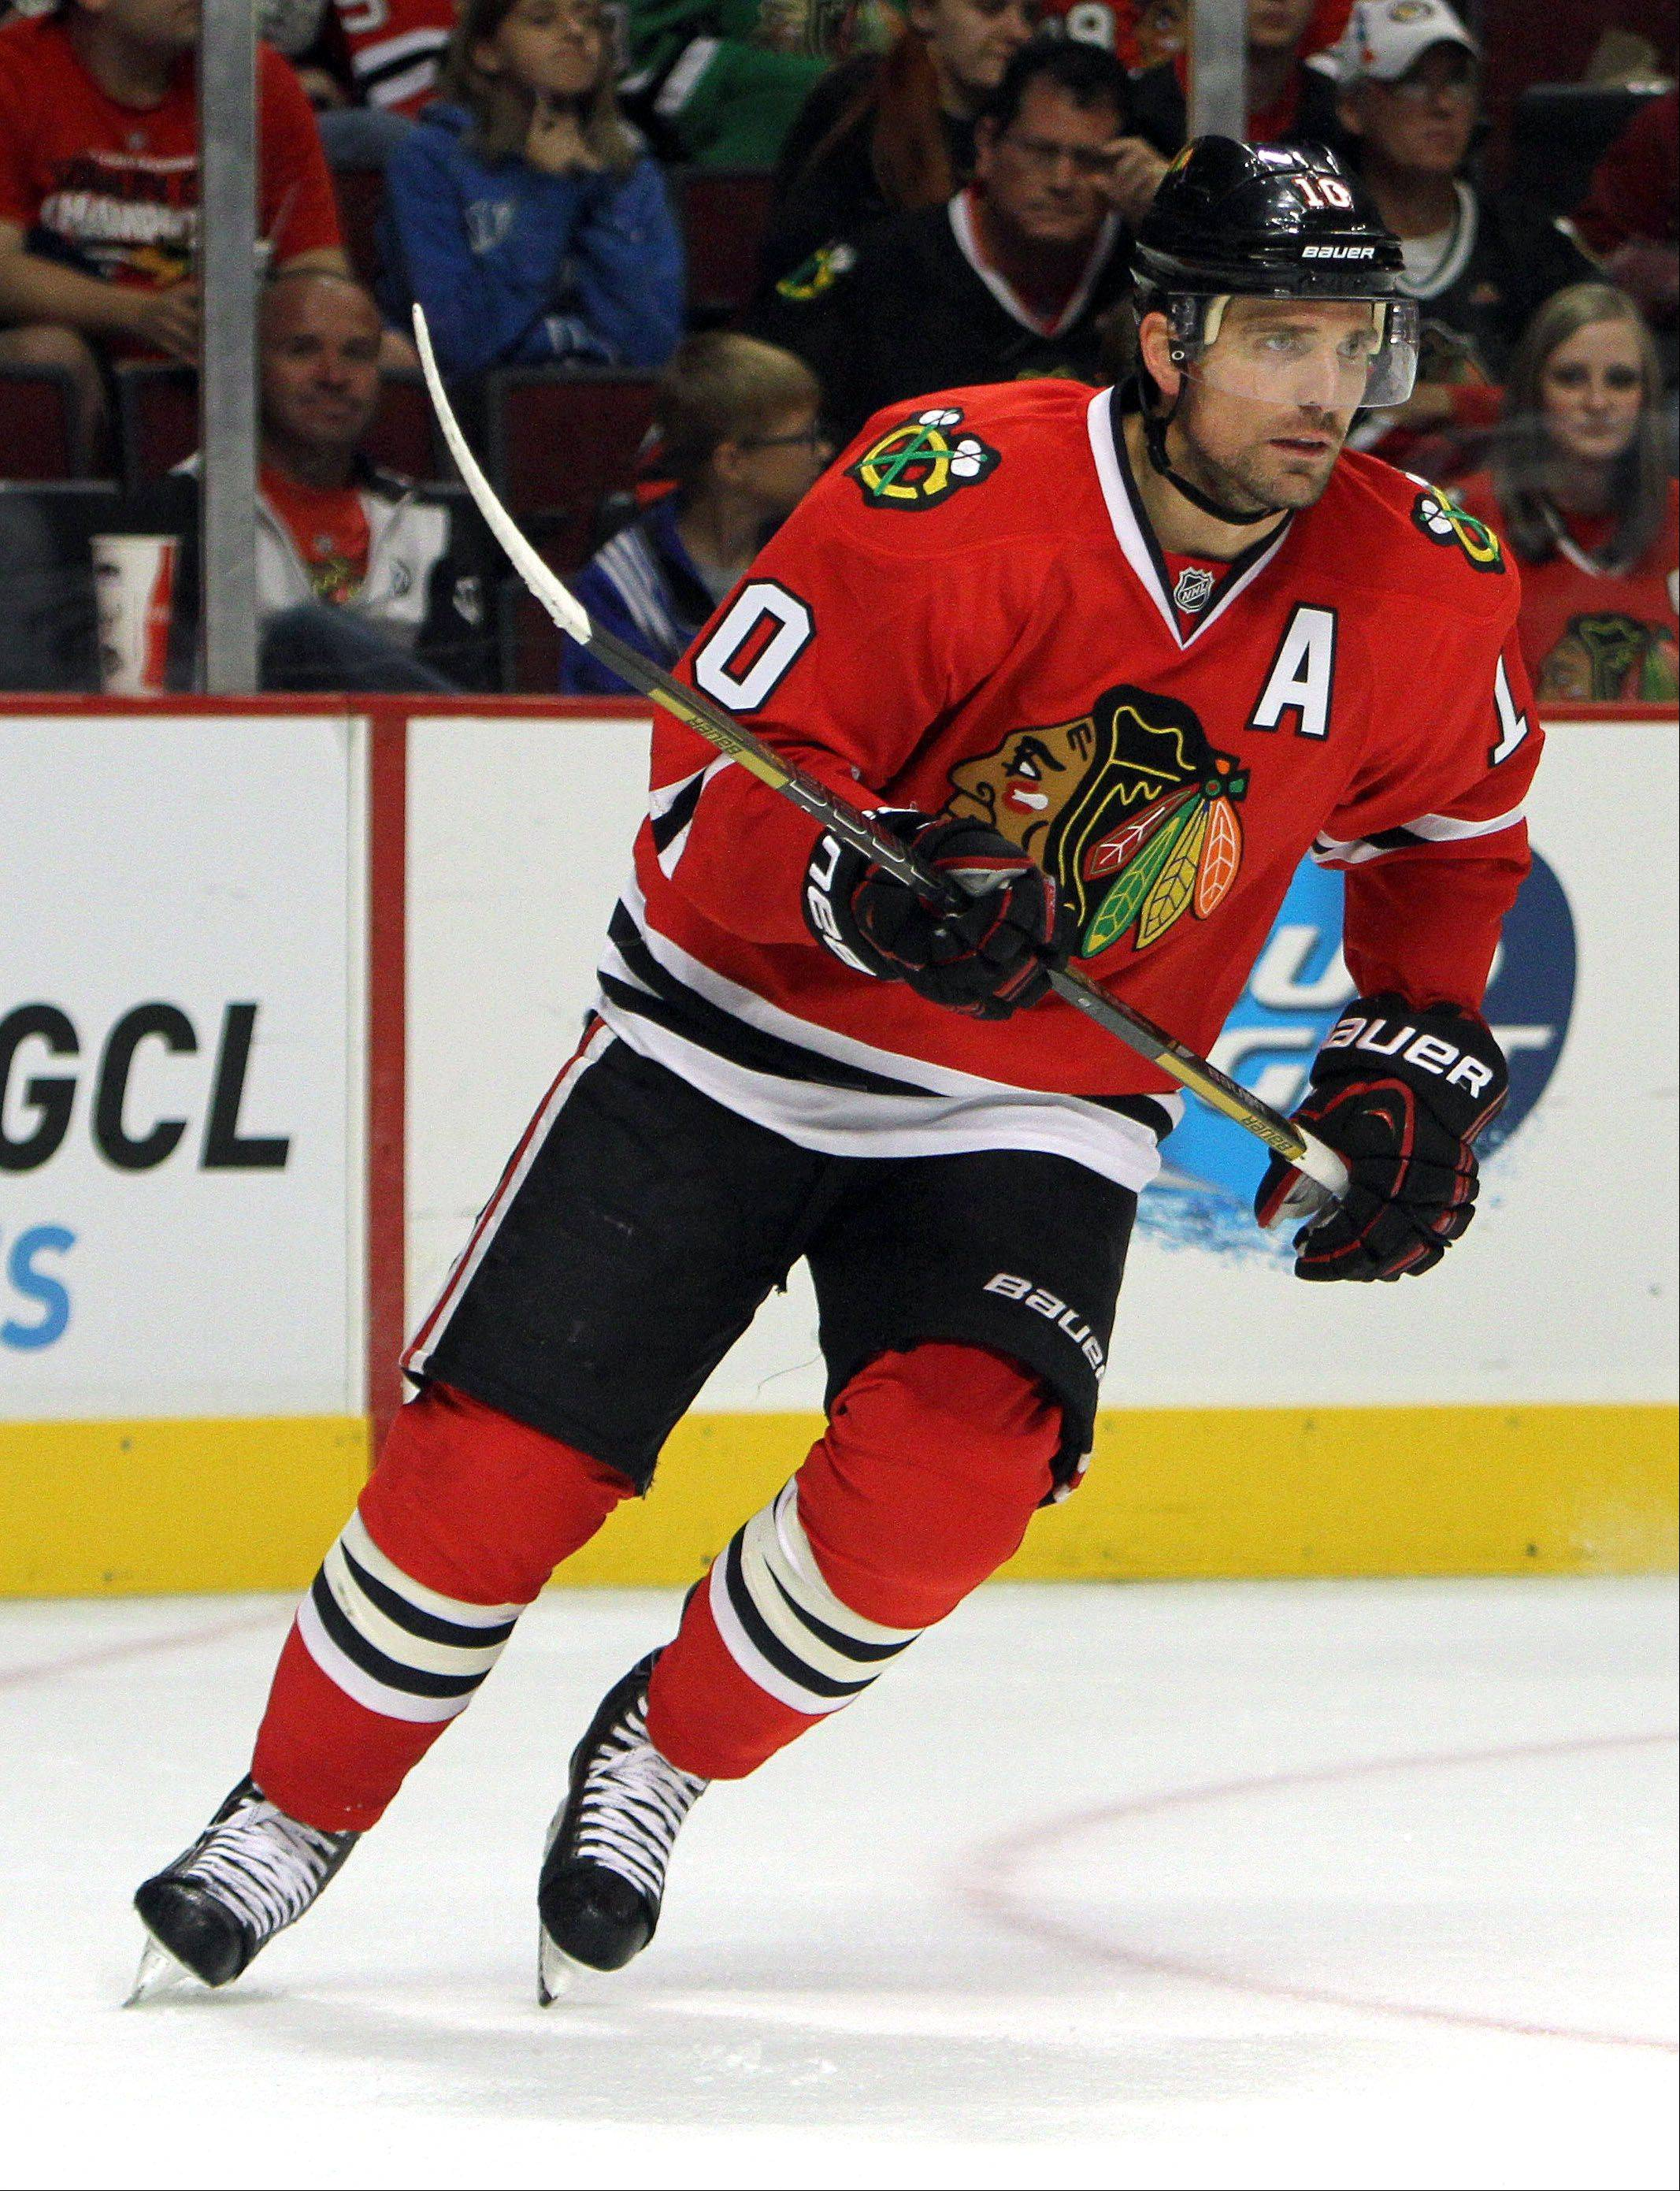 Sharp's focus on one goal for Blackhawks